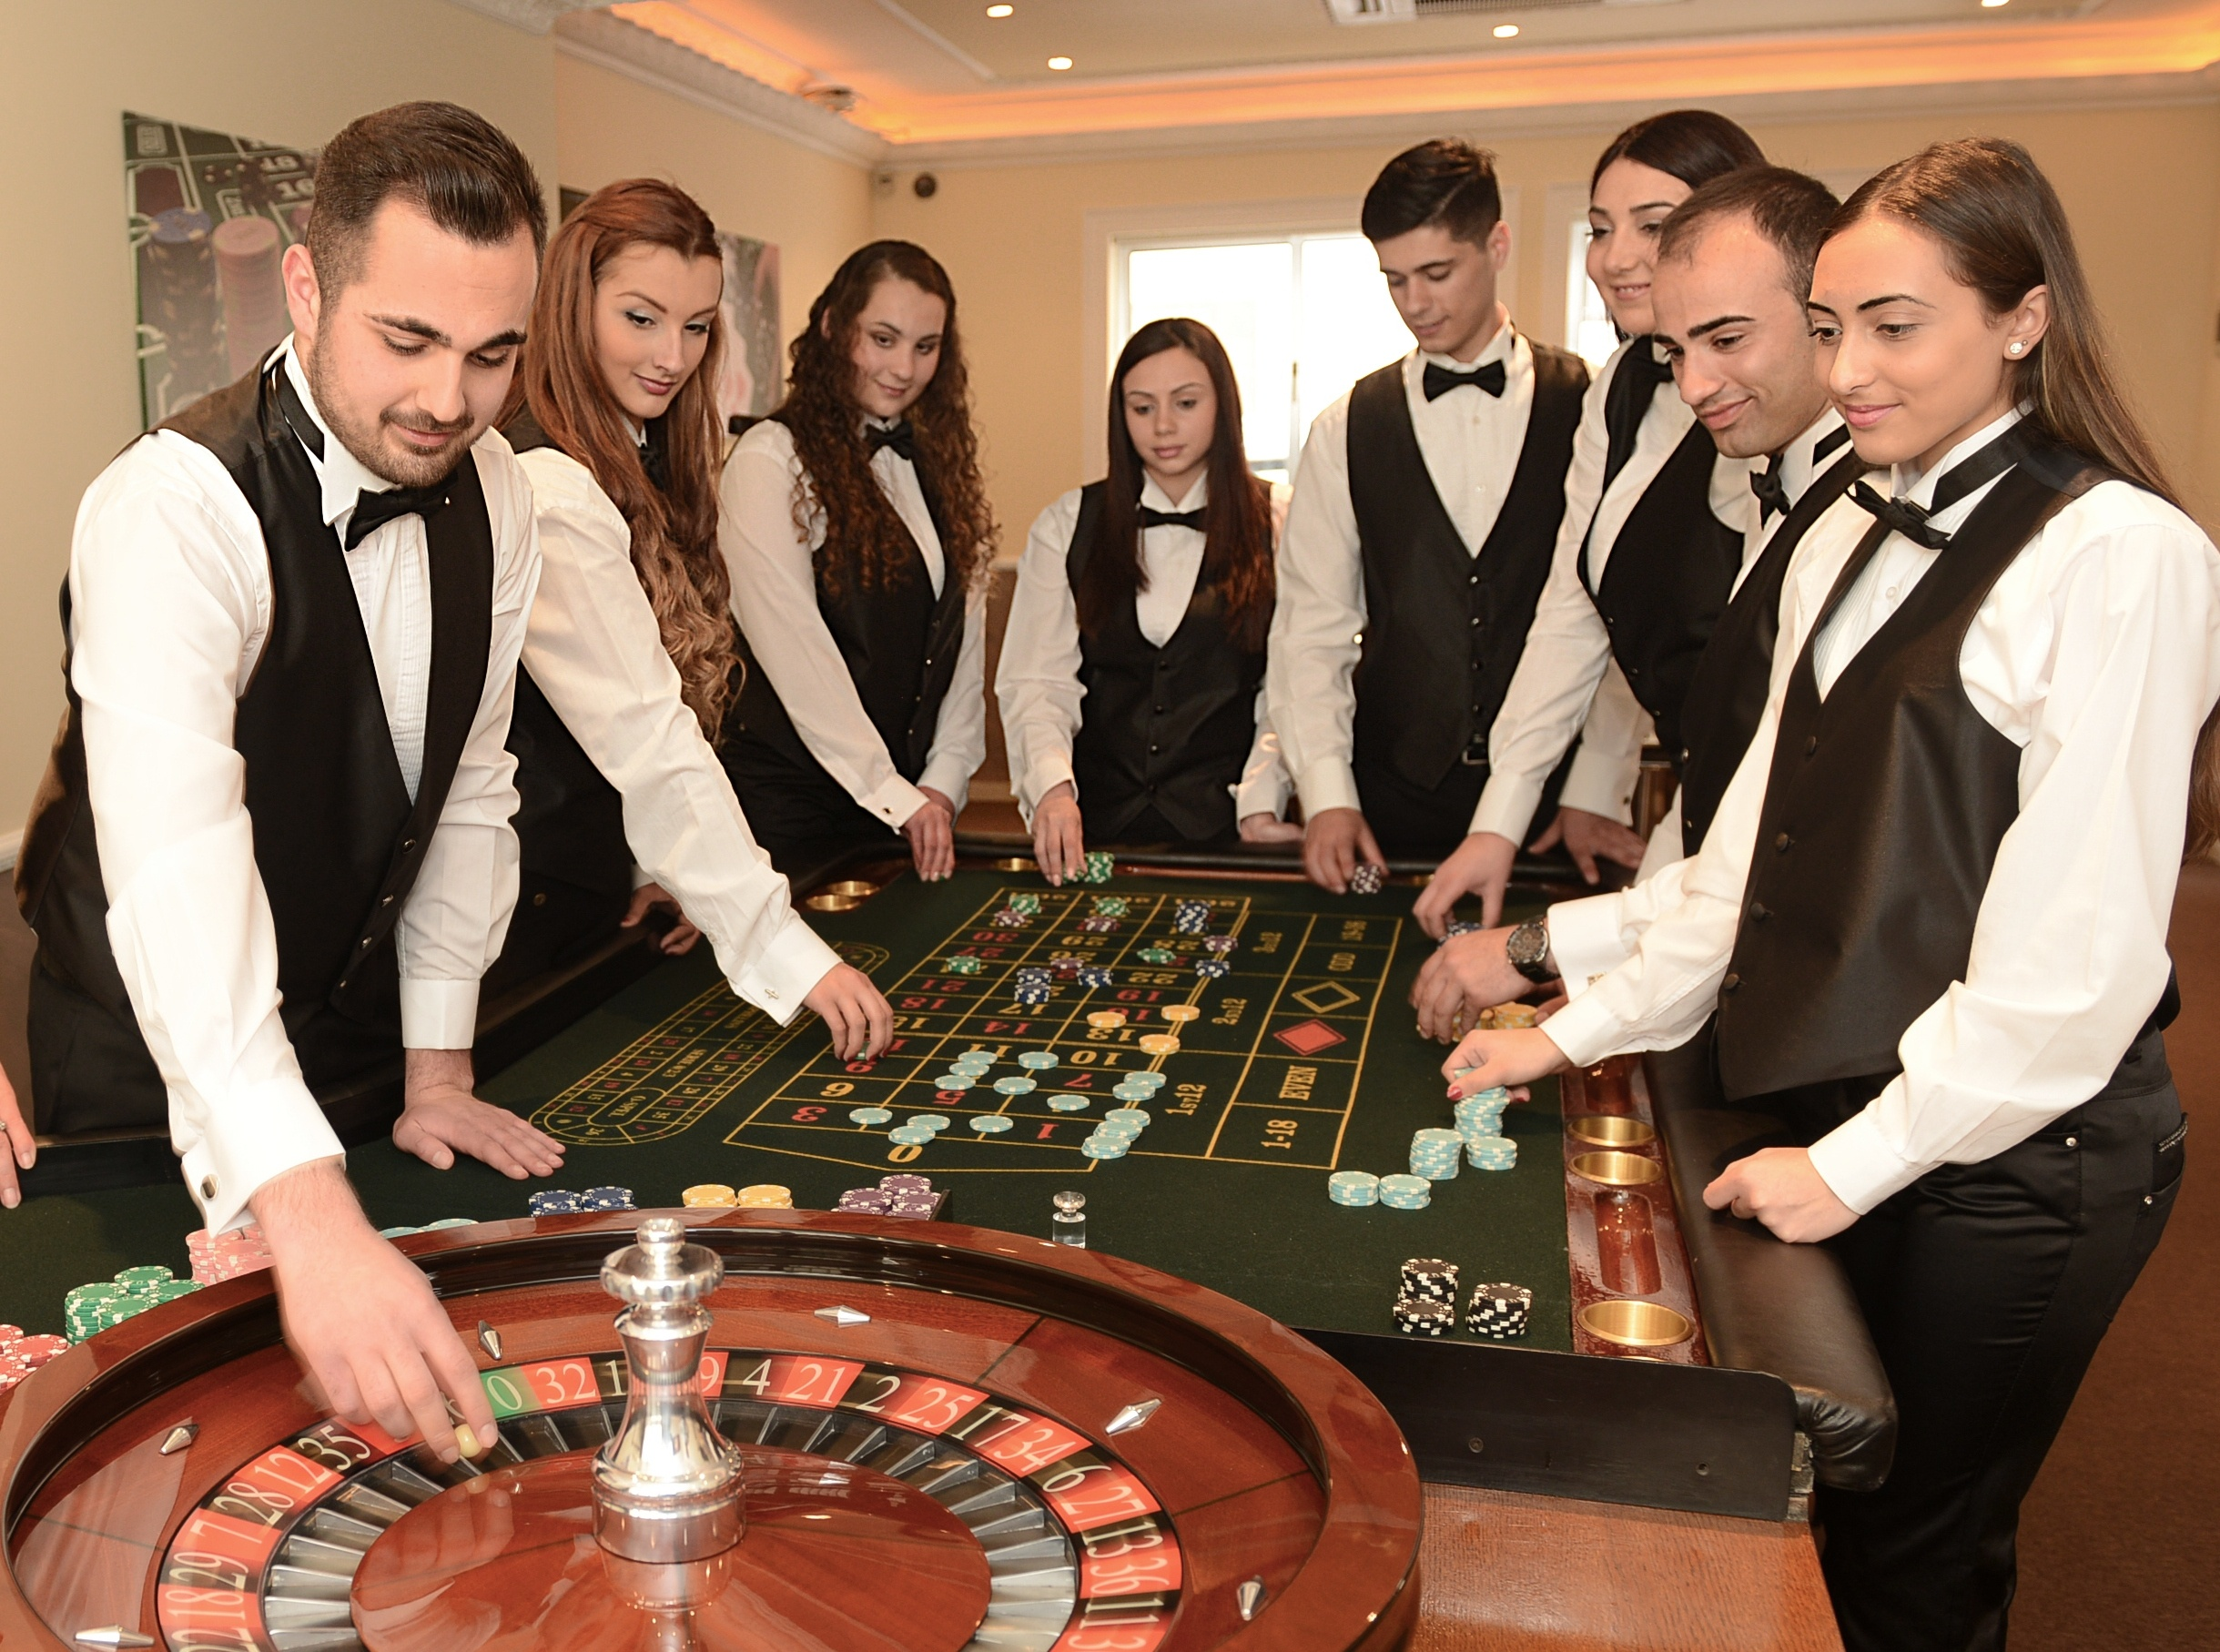 casino croupier jobs